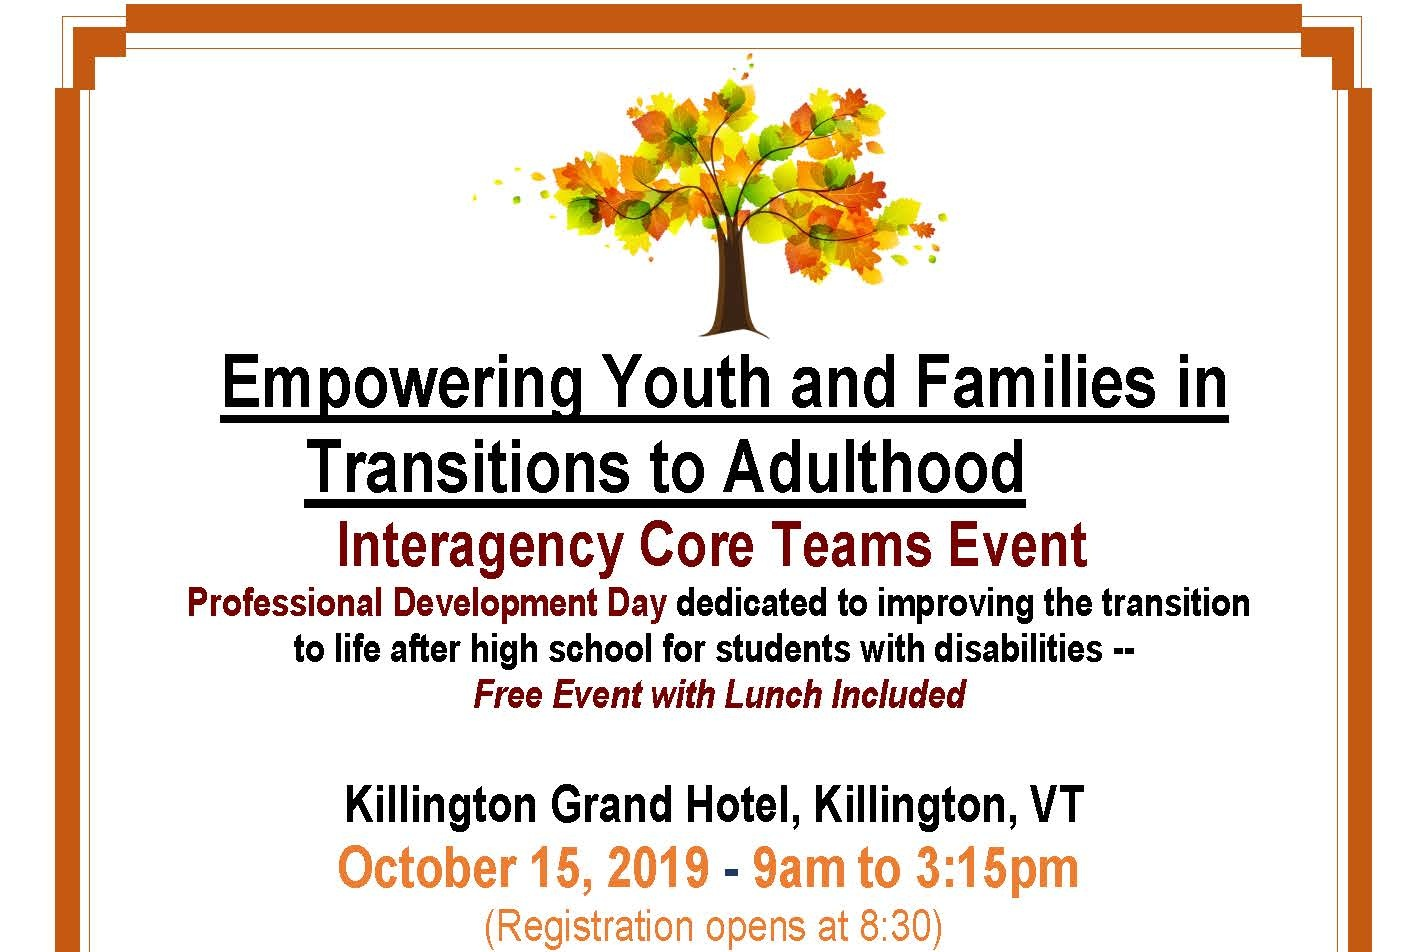 Empowering Youth and Families in Transitions to Adulthood